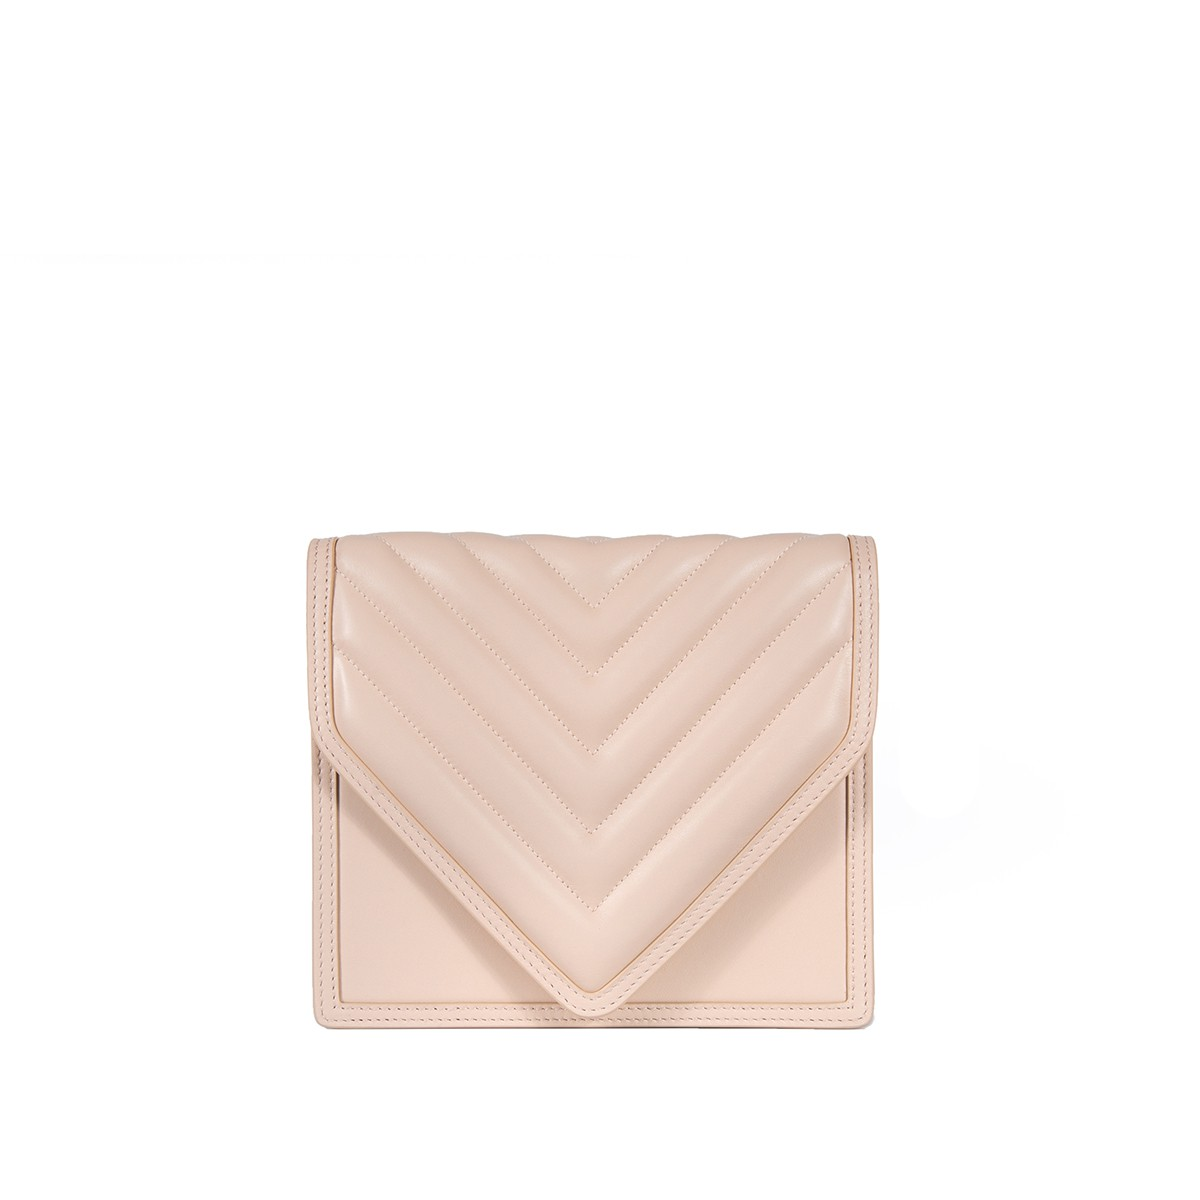 Alexa in Nude Quilted Napa1